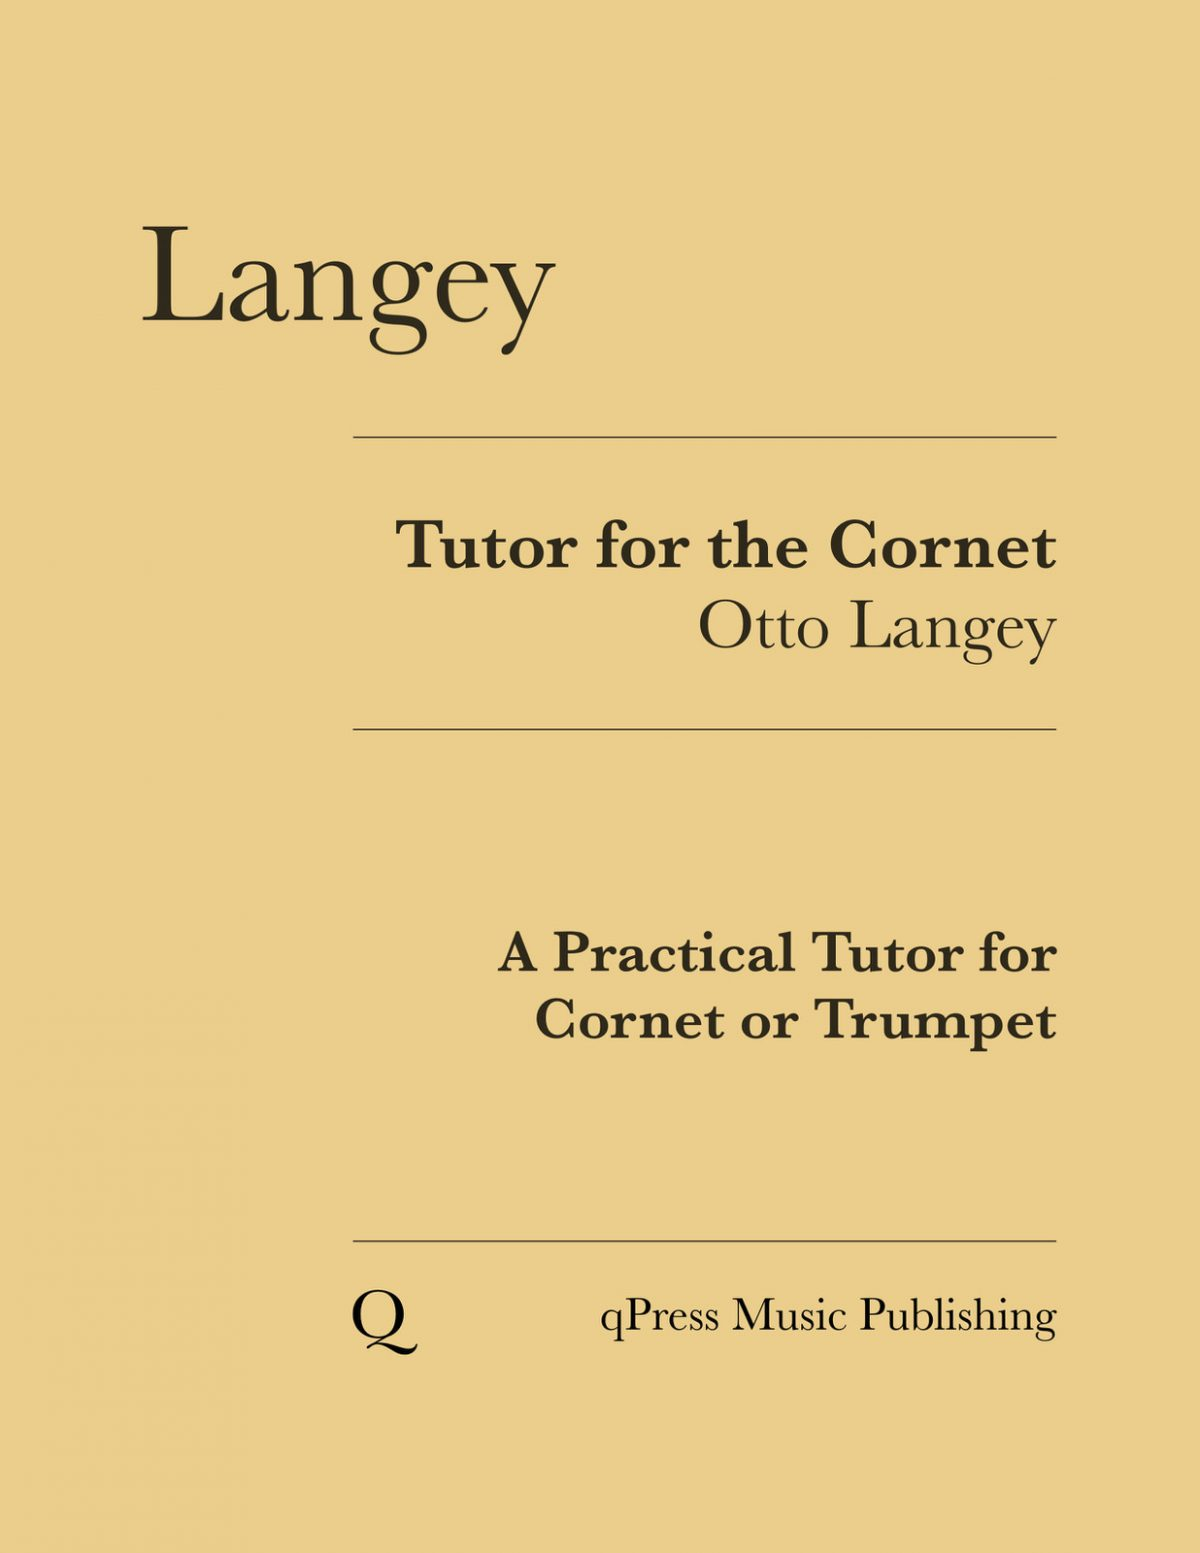 Langey, Otto Tutor for Cornet